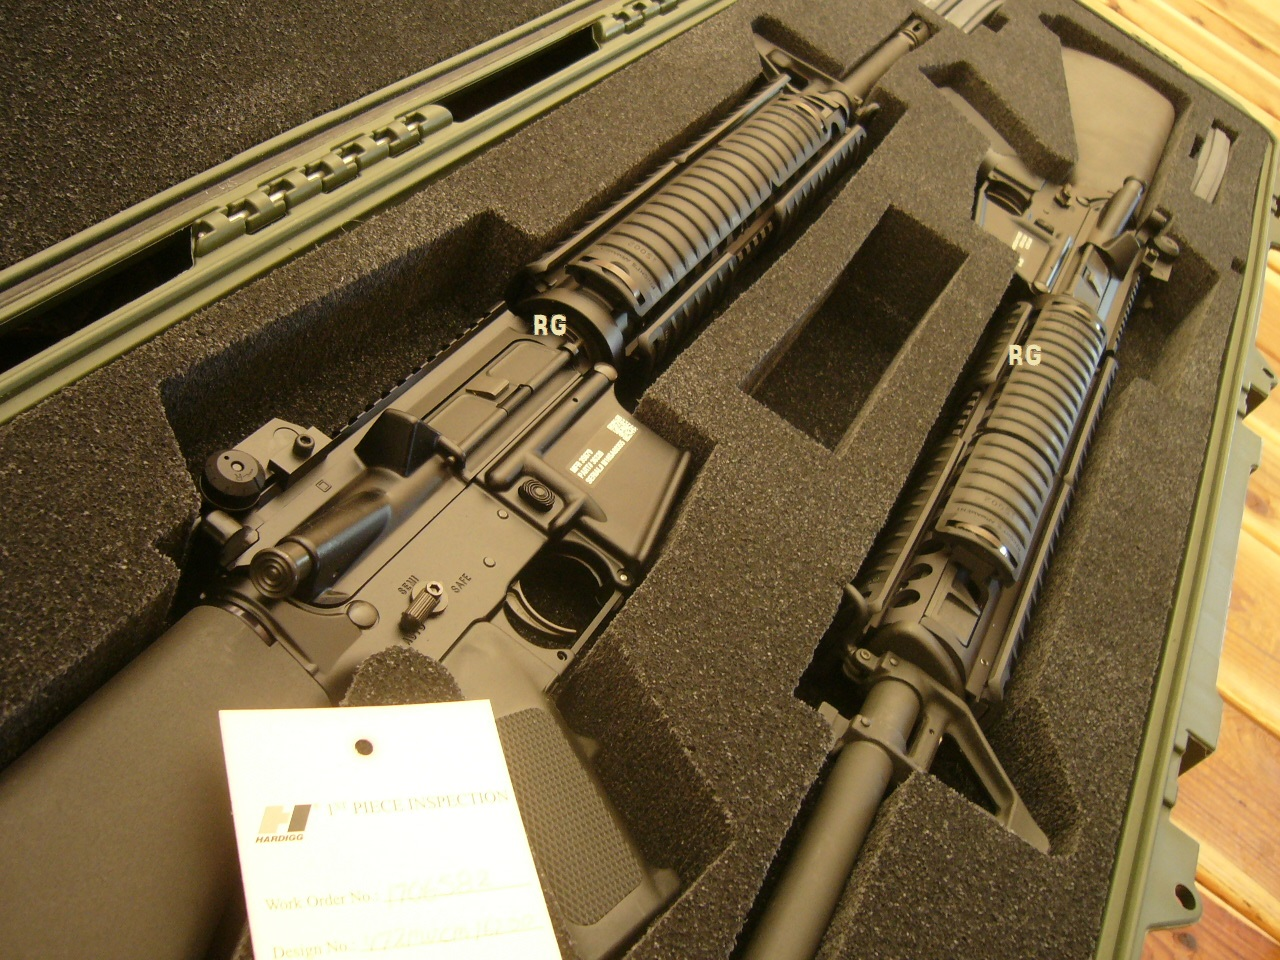 SEQUENTIAL SET OF TWO M16 RIFLES CIVILIAN LEGAL NO STAMP NIB #22 AND #23  GOV'T ISSUE CASE